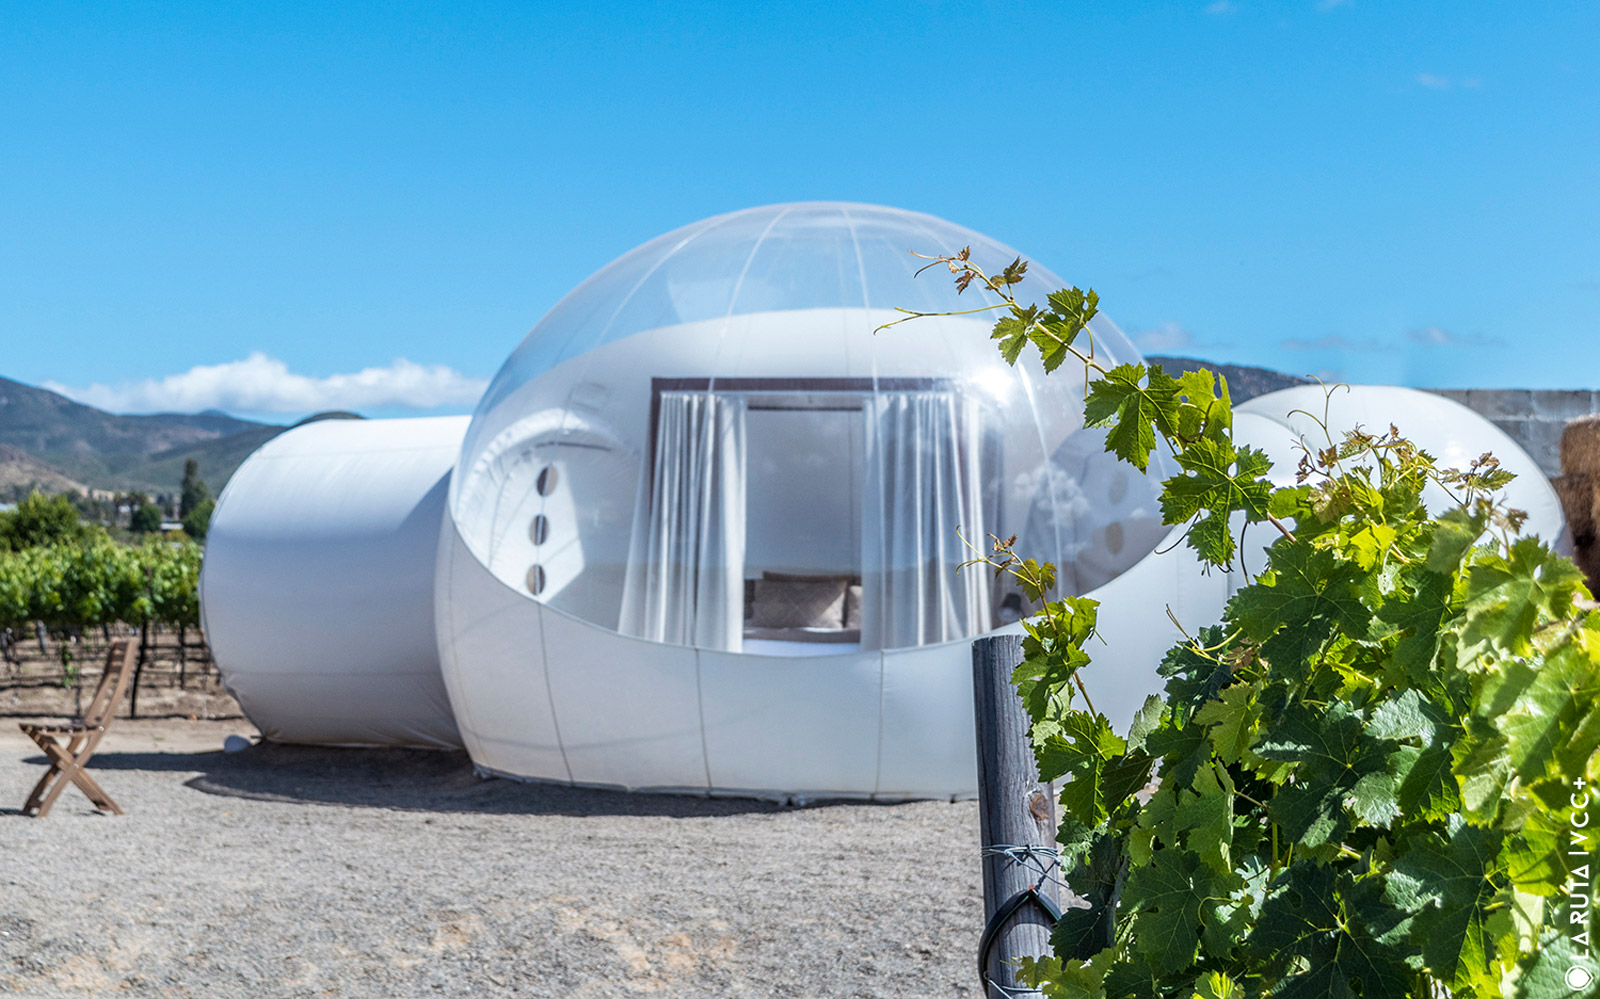 There's a Bubble Hotel in the Vineyards of Mexico Where You Can Gaze at 5 Million Stars